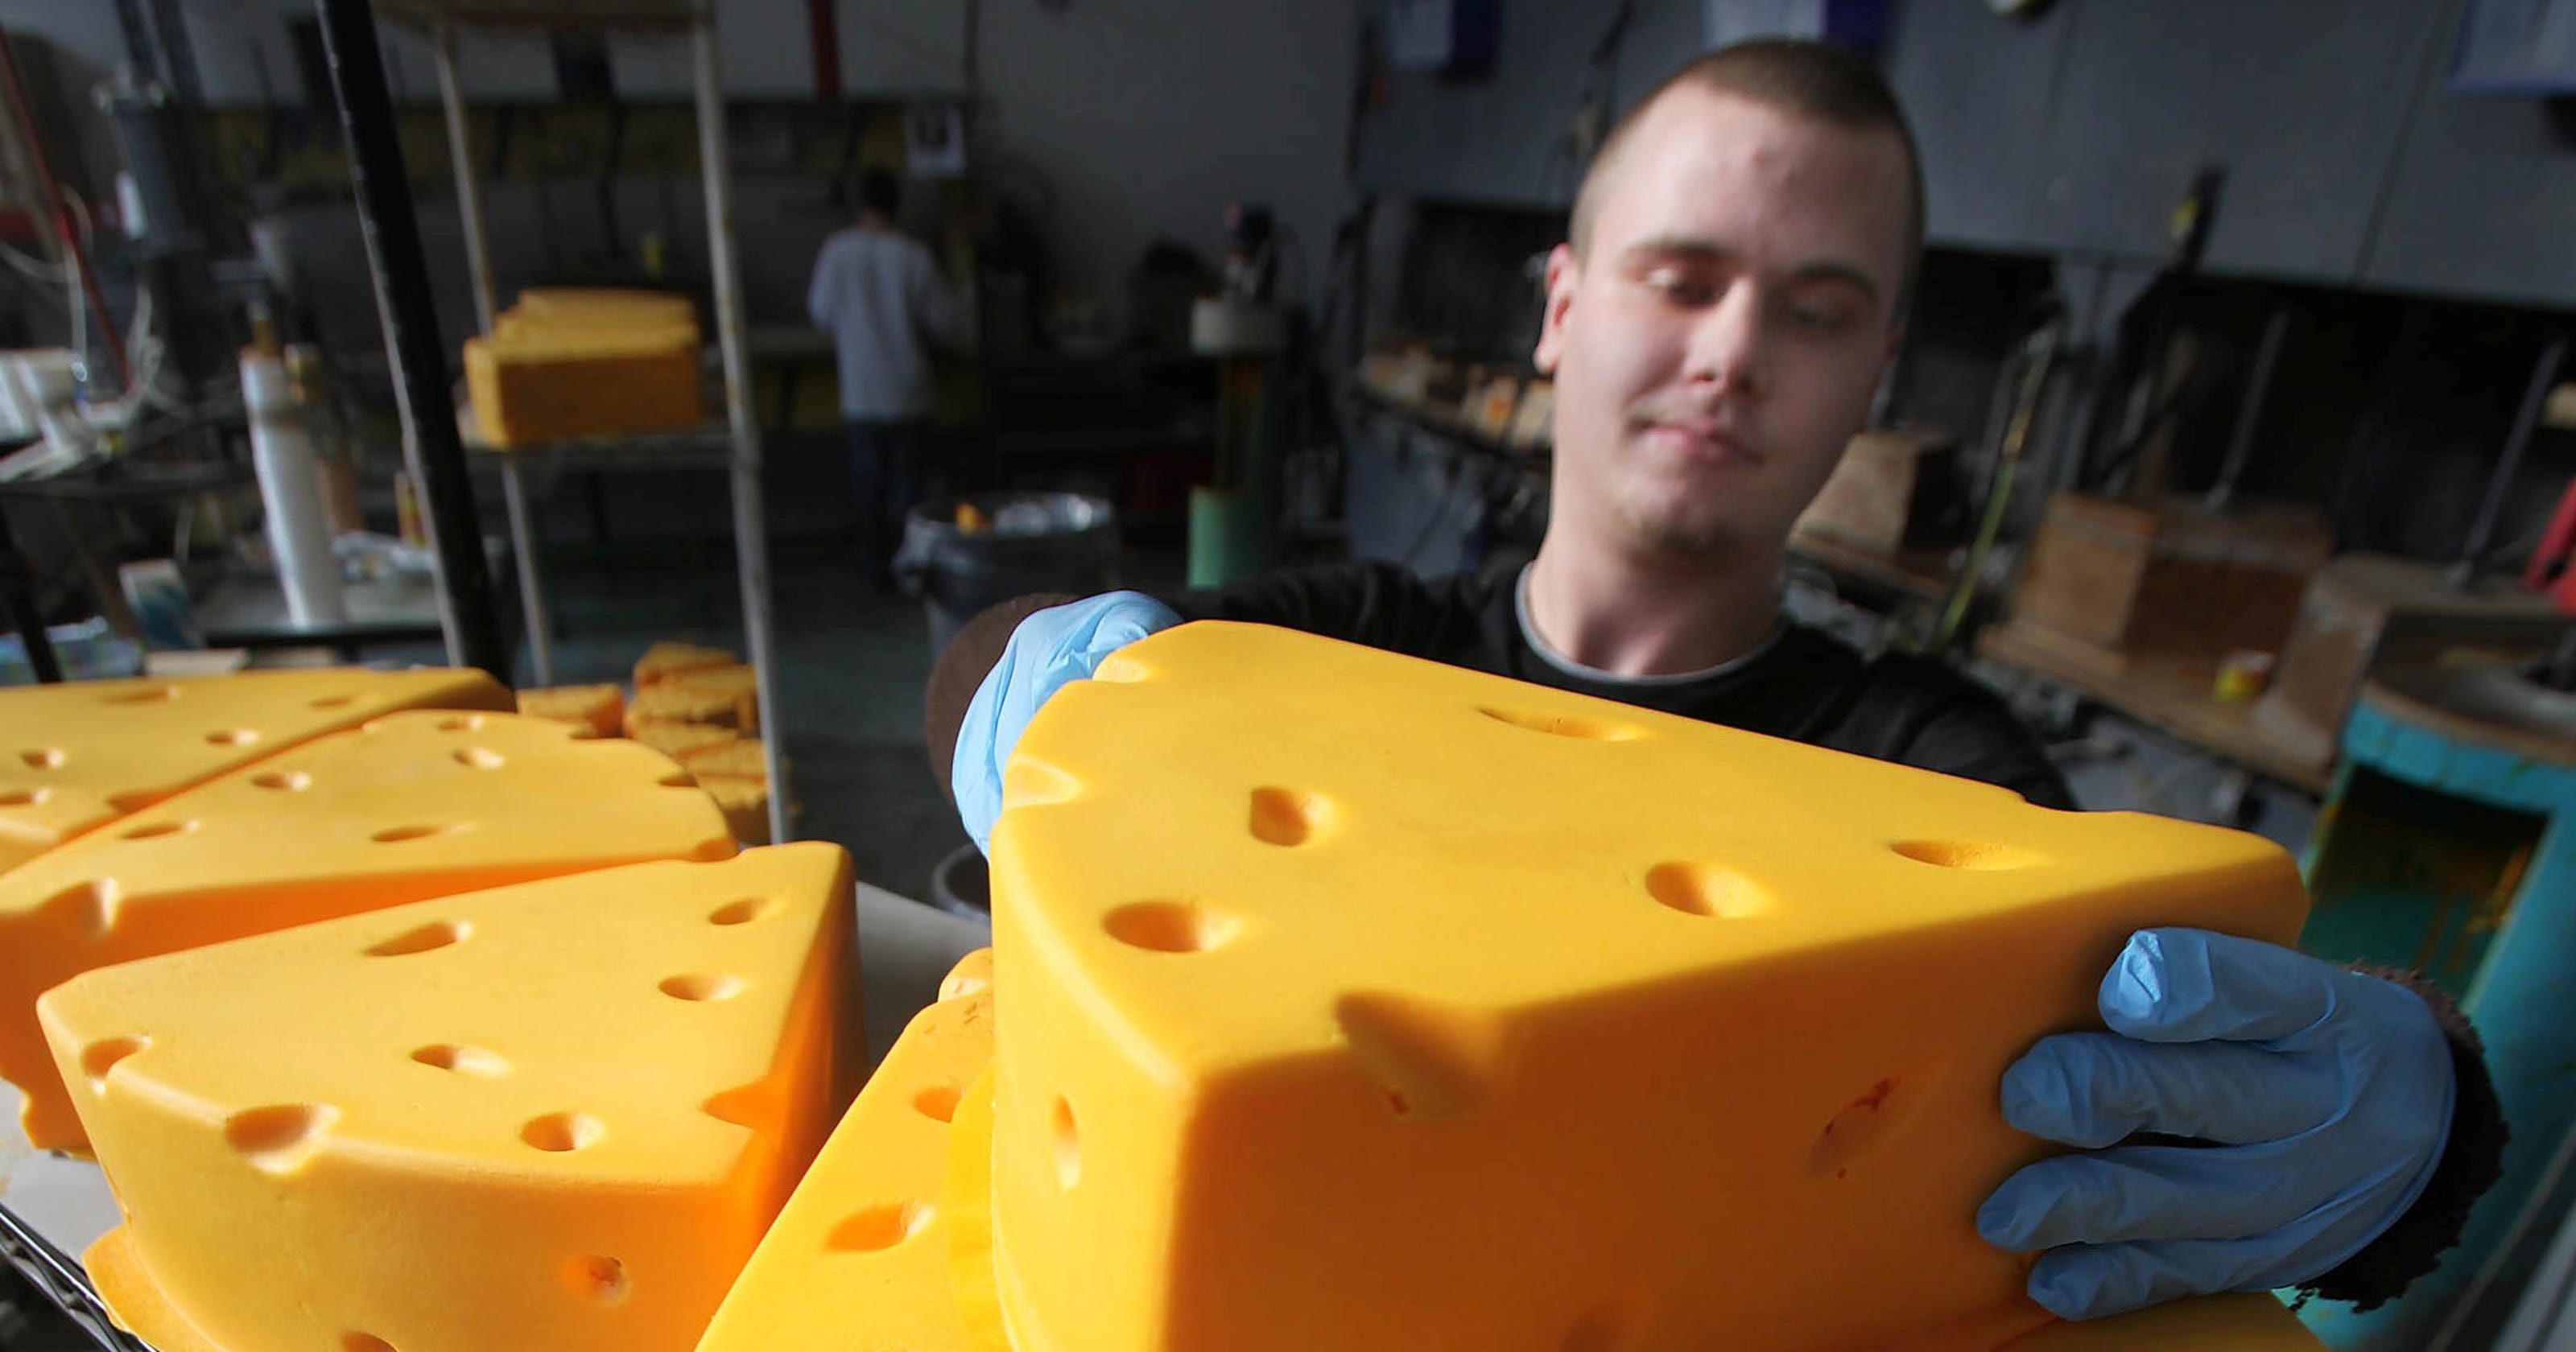 Fan successfully names 27 cheeses in 30 seconds at Bucks game